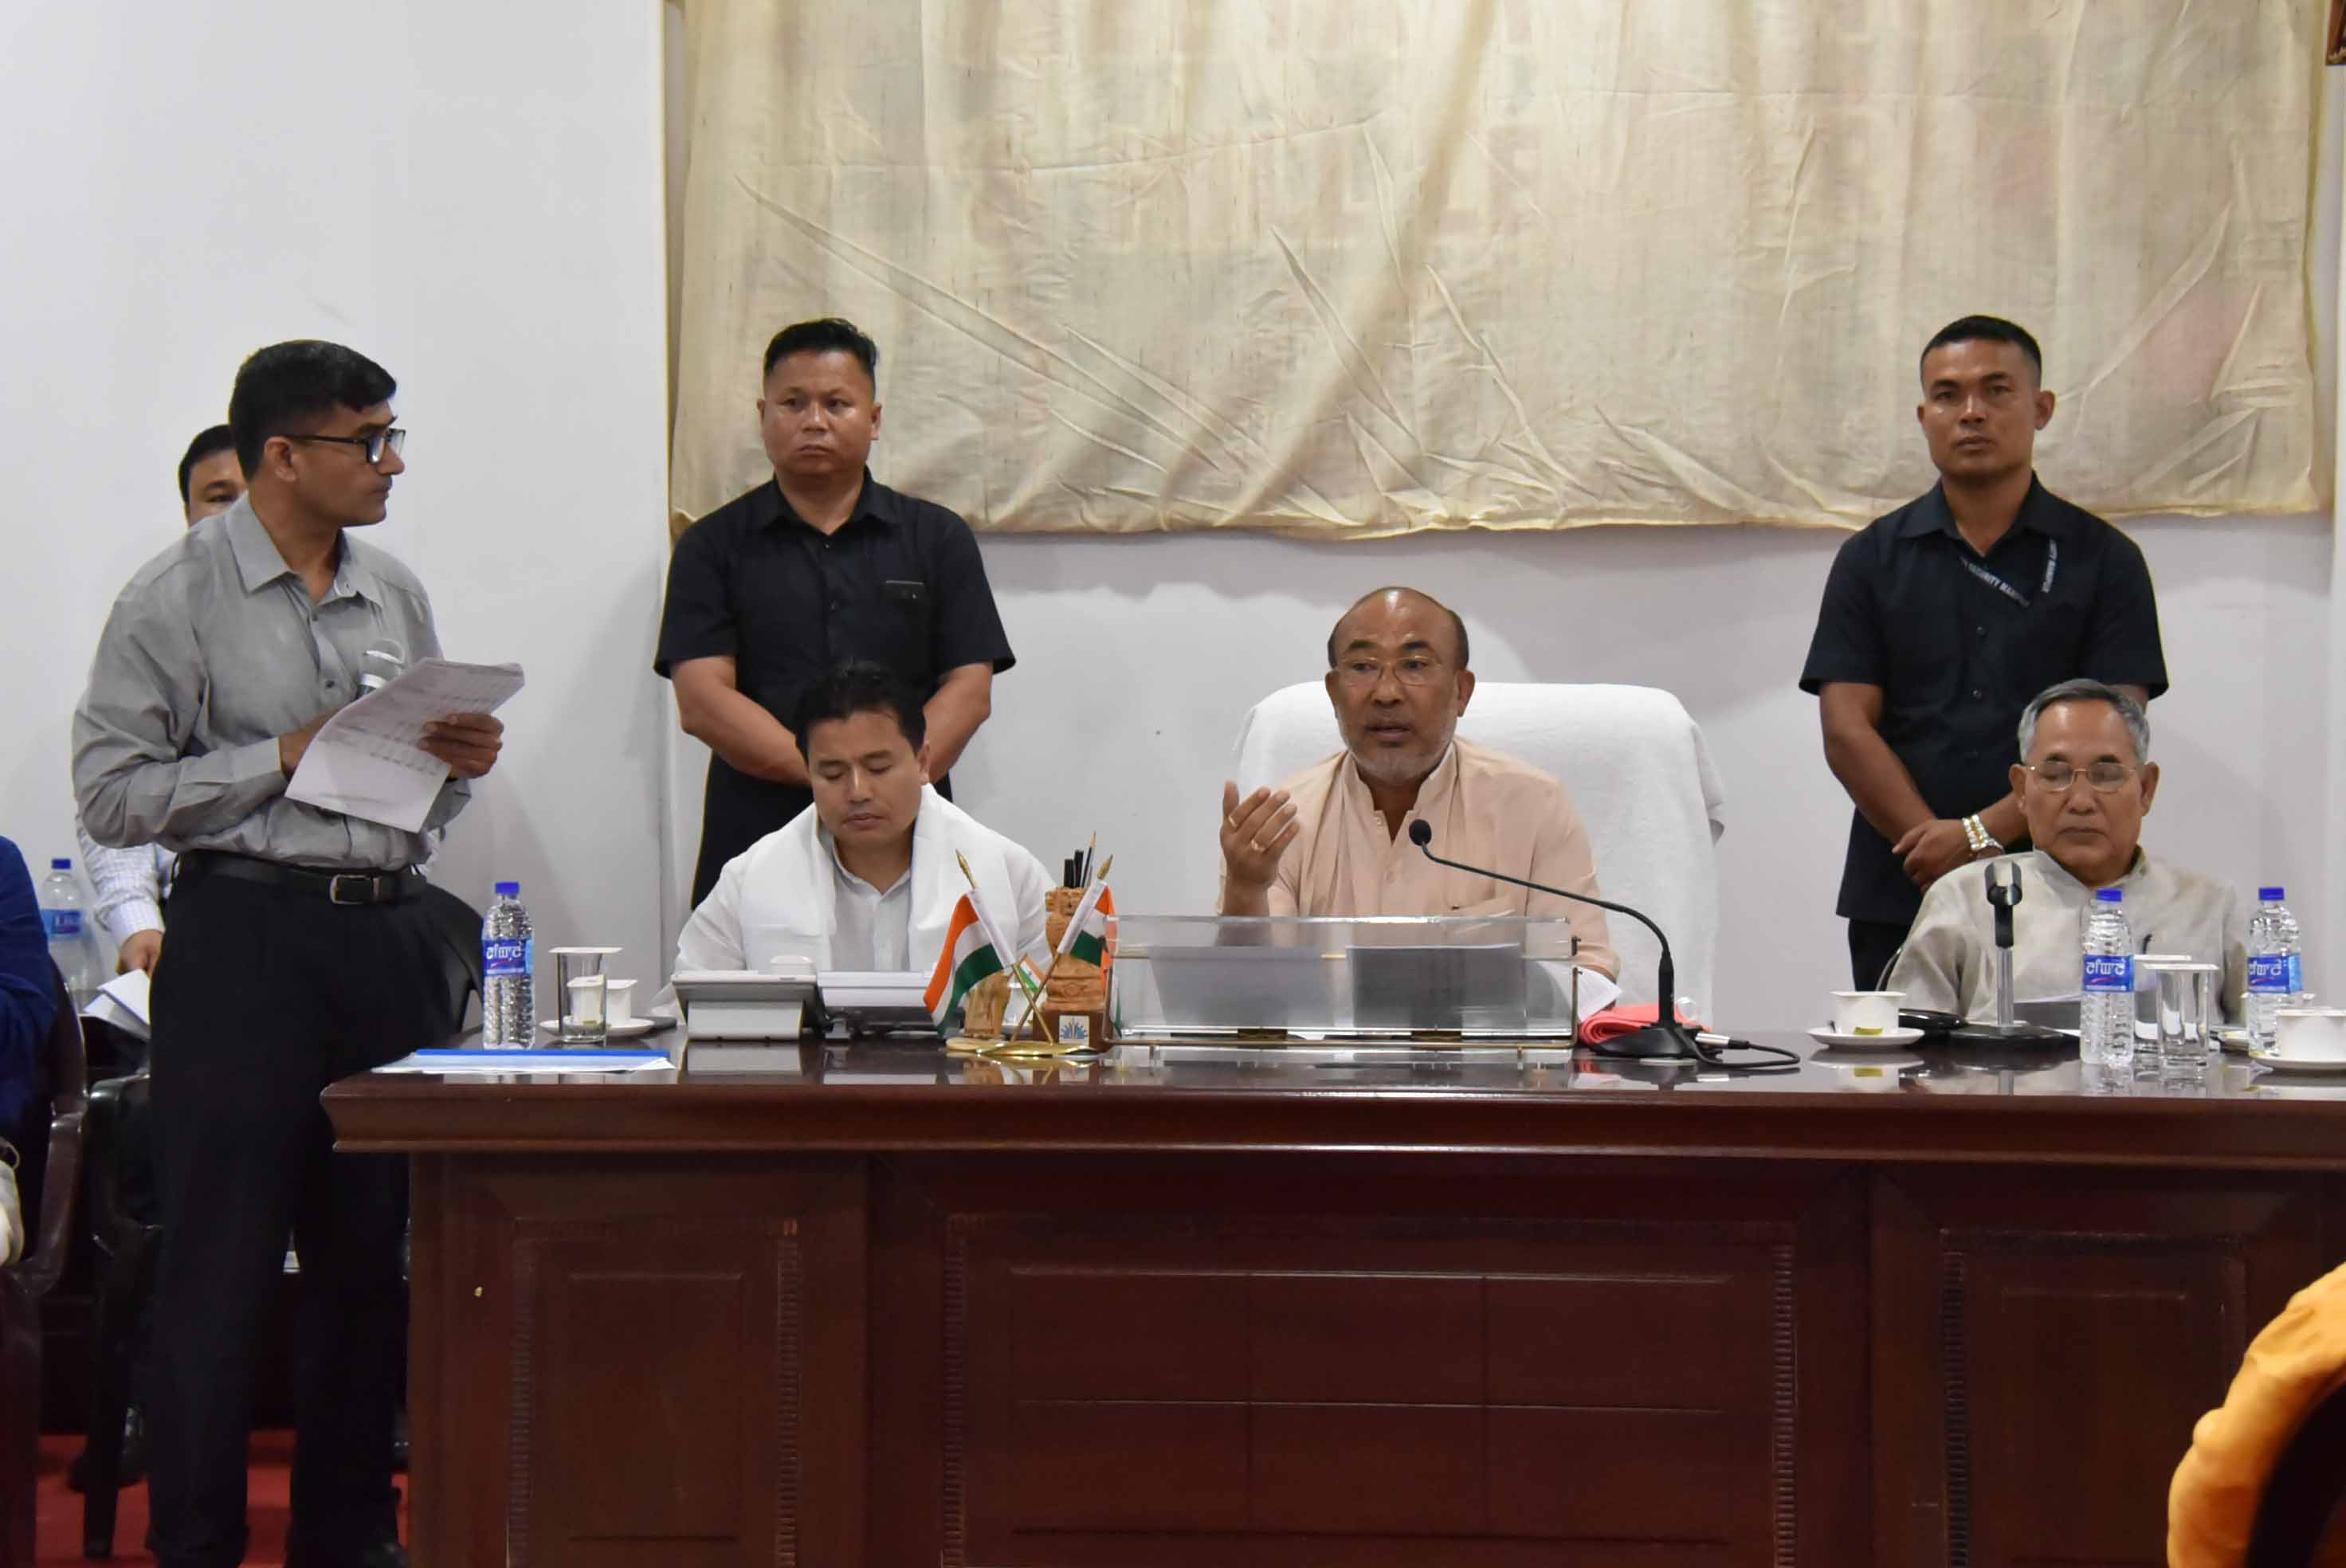 Manipur chief minister N Biren singh addressing at a review meeting of his government s Go to Village mission in Imphal on Saturday